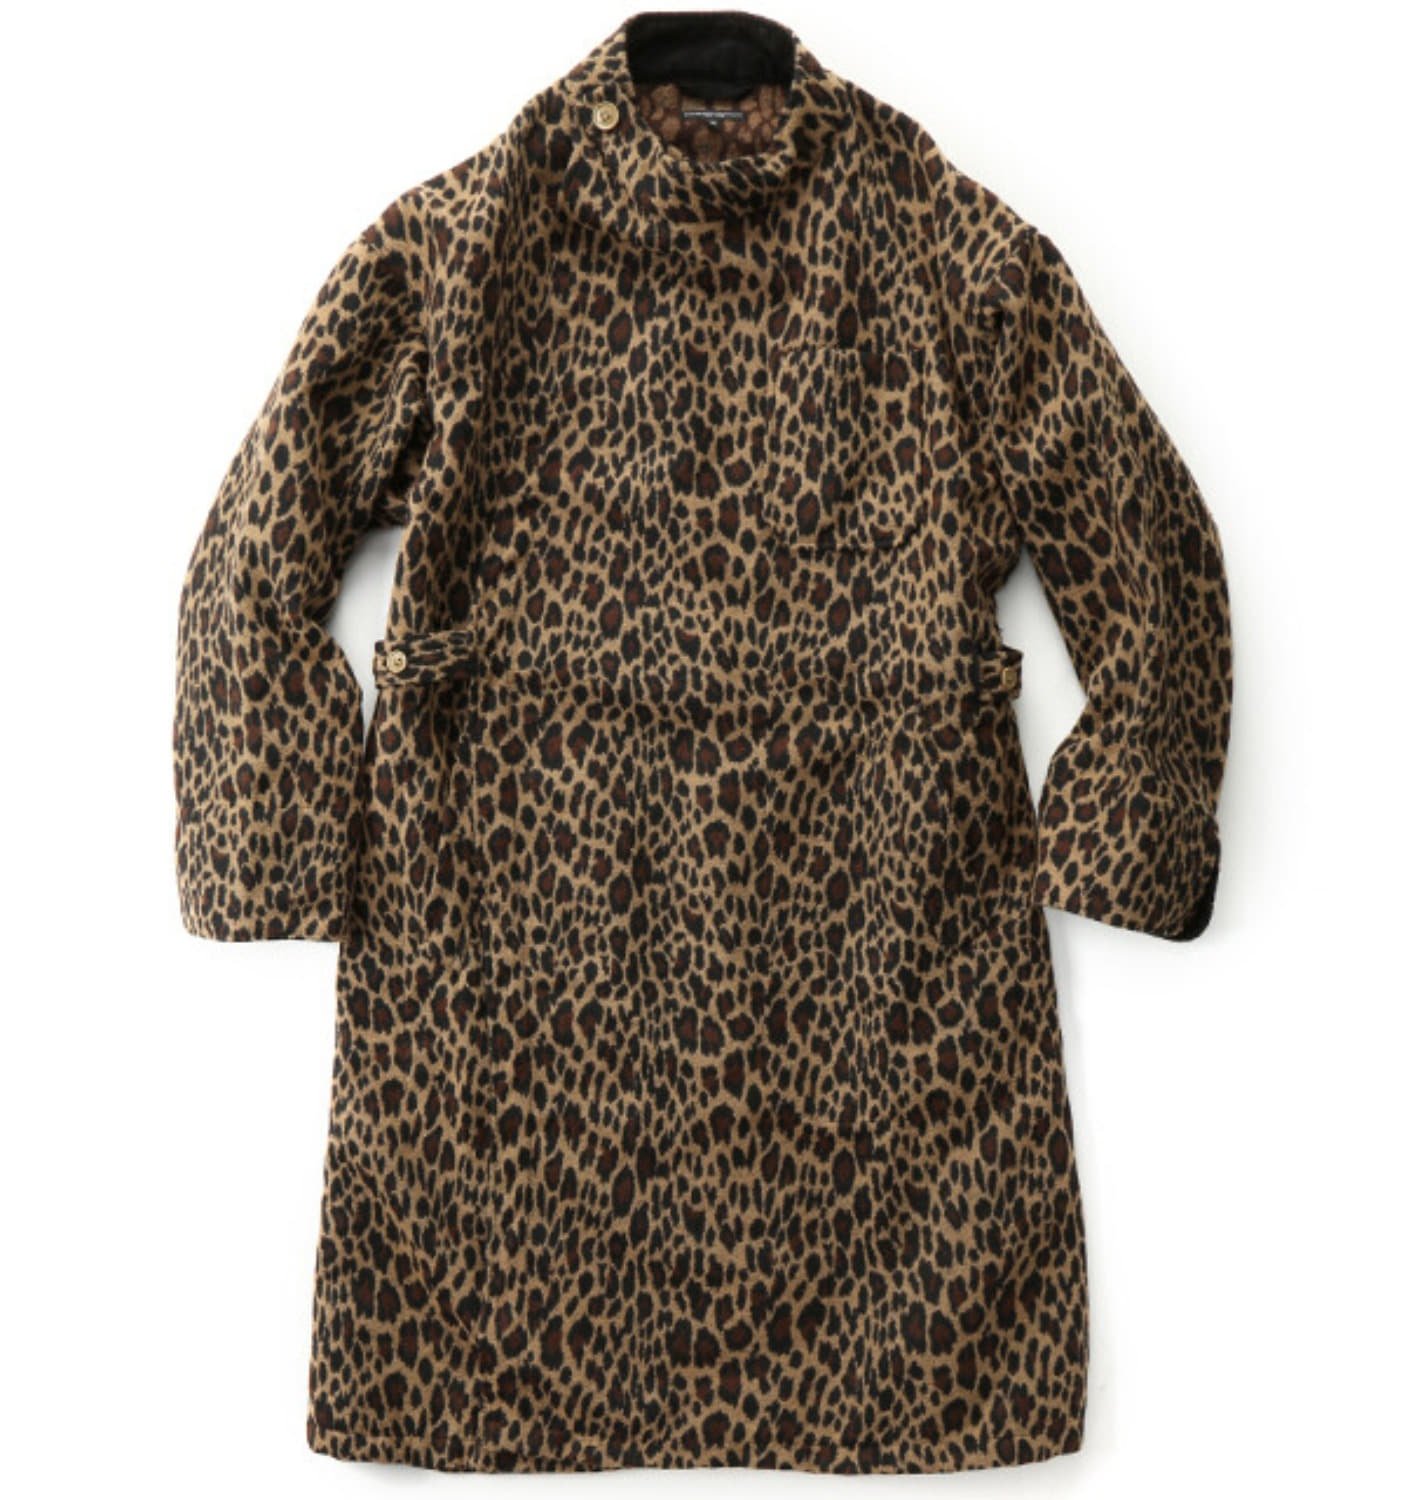 MG COAT BROWN POLY WOOL LEOPARD JACQUARD